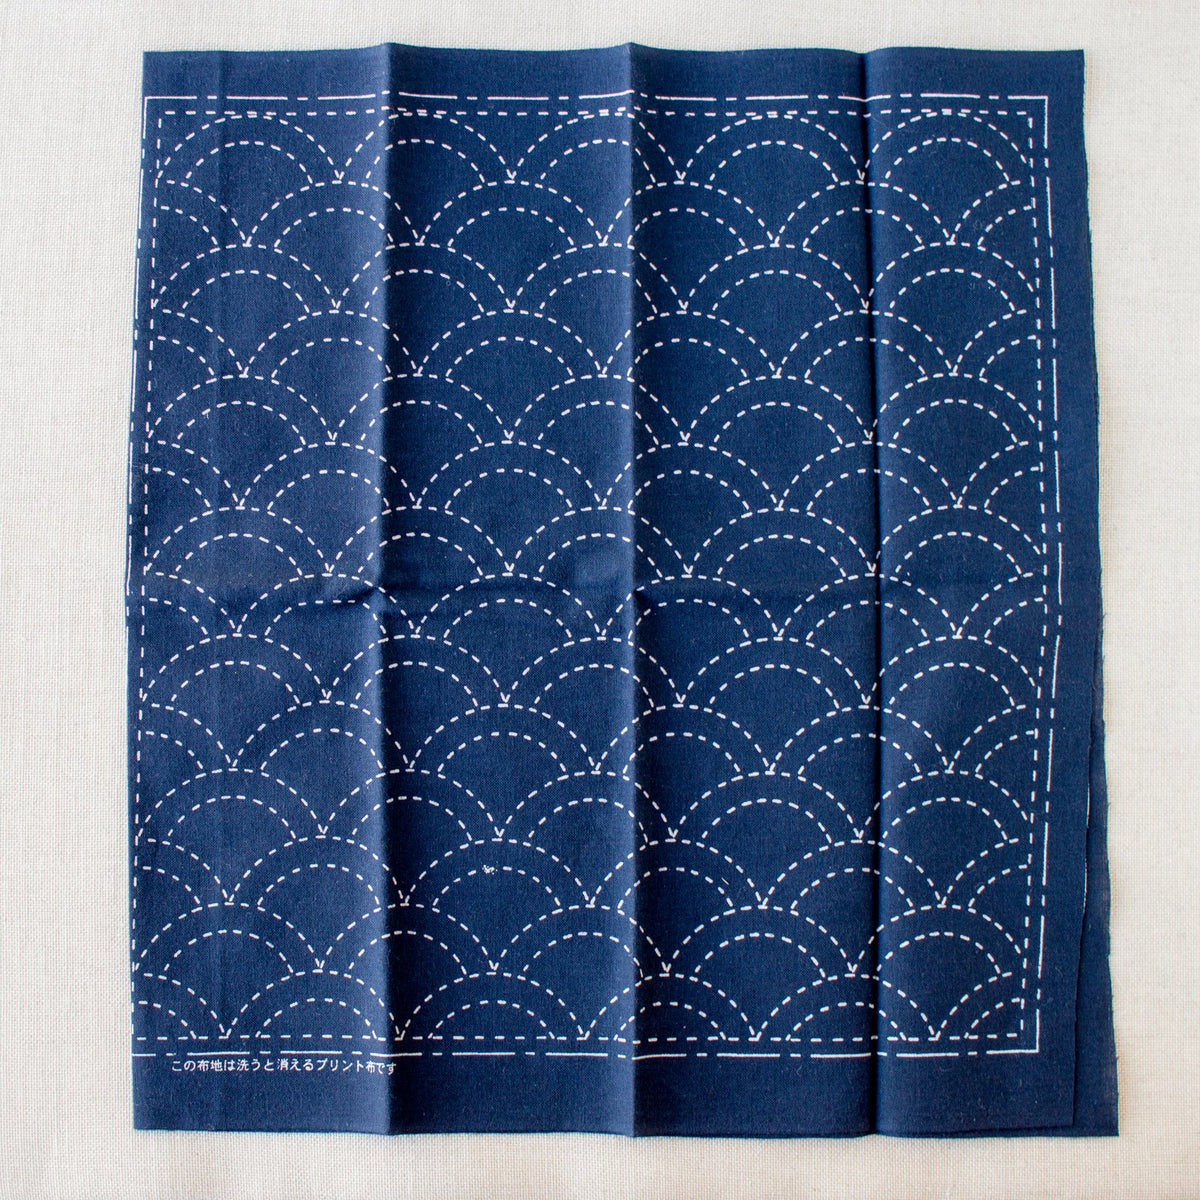 Japanese Sashiko Navy Blue Sampler Cloth - Waves